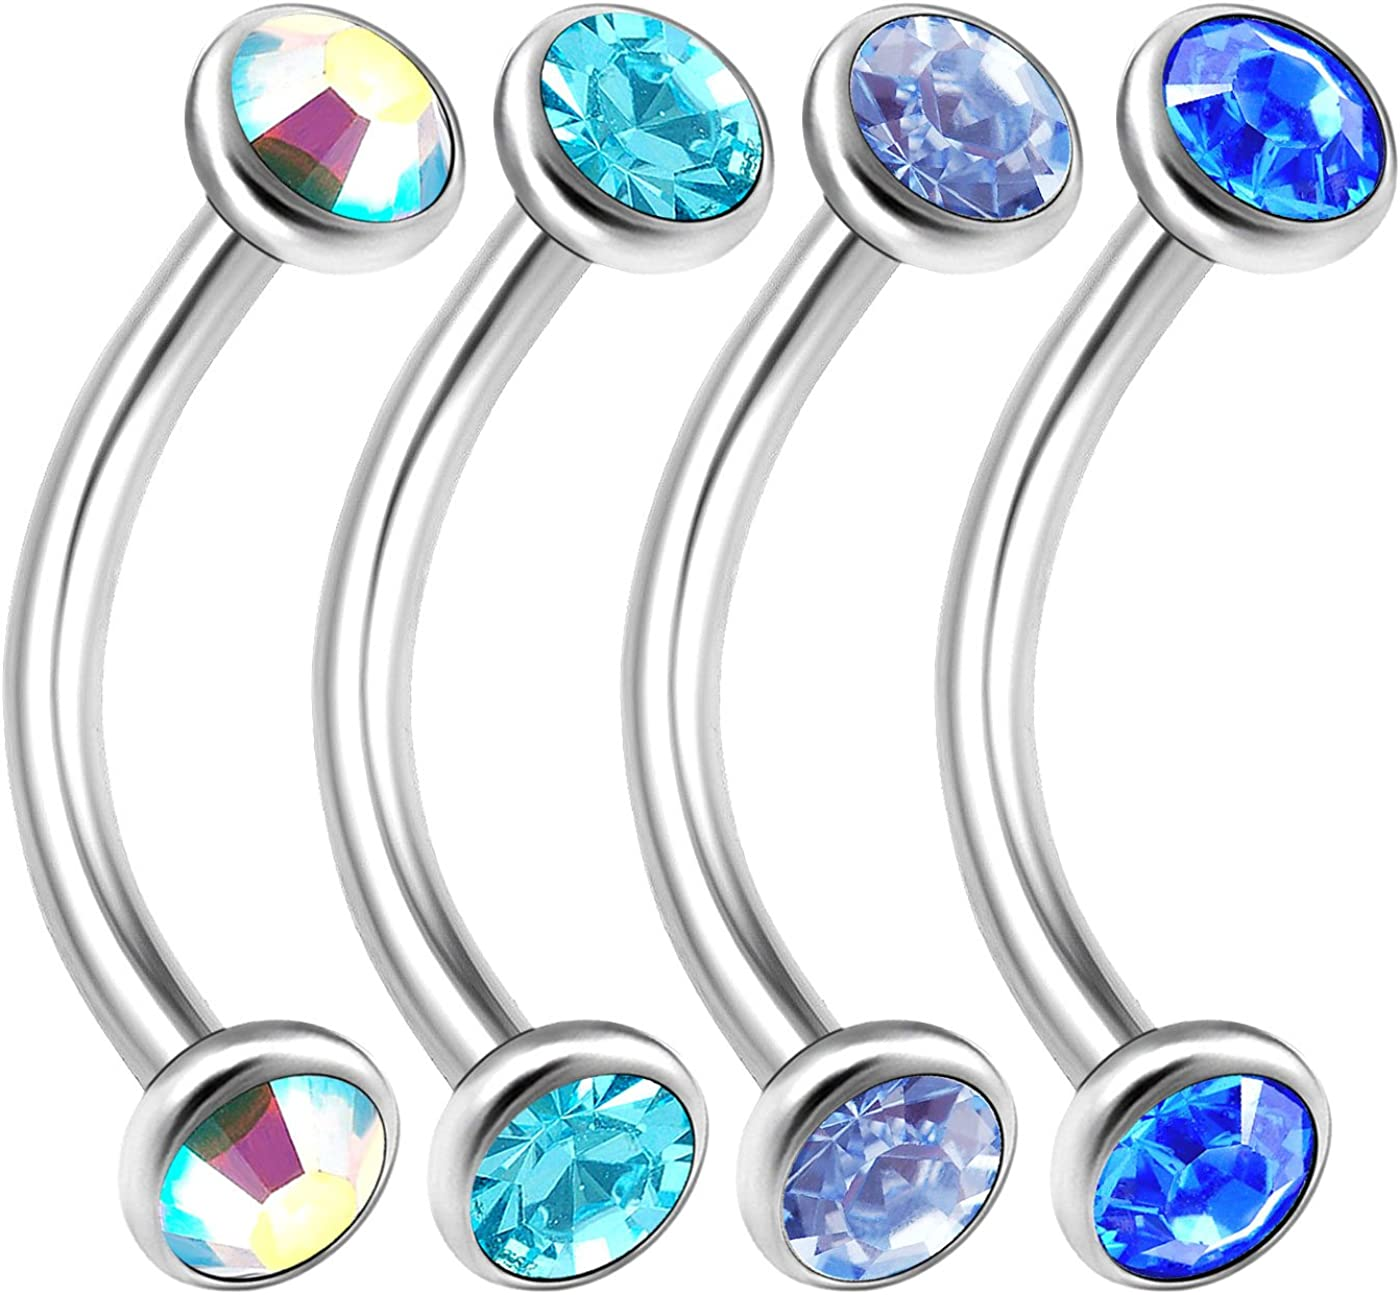 bodyjewellery 4Pcs 16g New products, world's highest quality popular! 10mm Curved Cartila Barbell Ear Ring Lobe Max 53% OFF